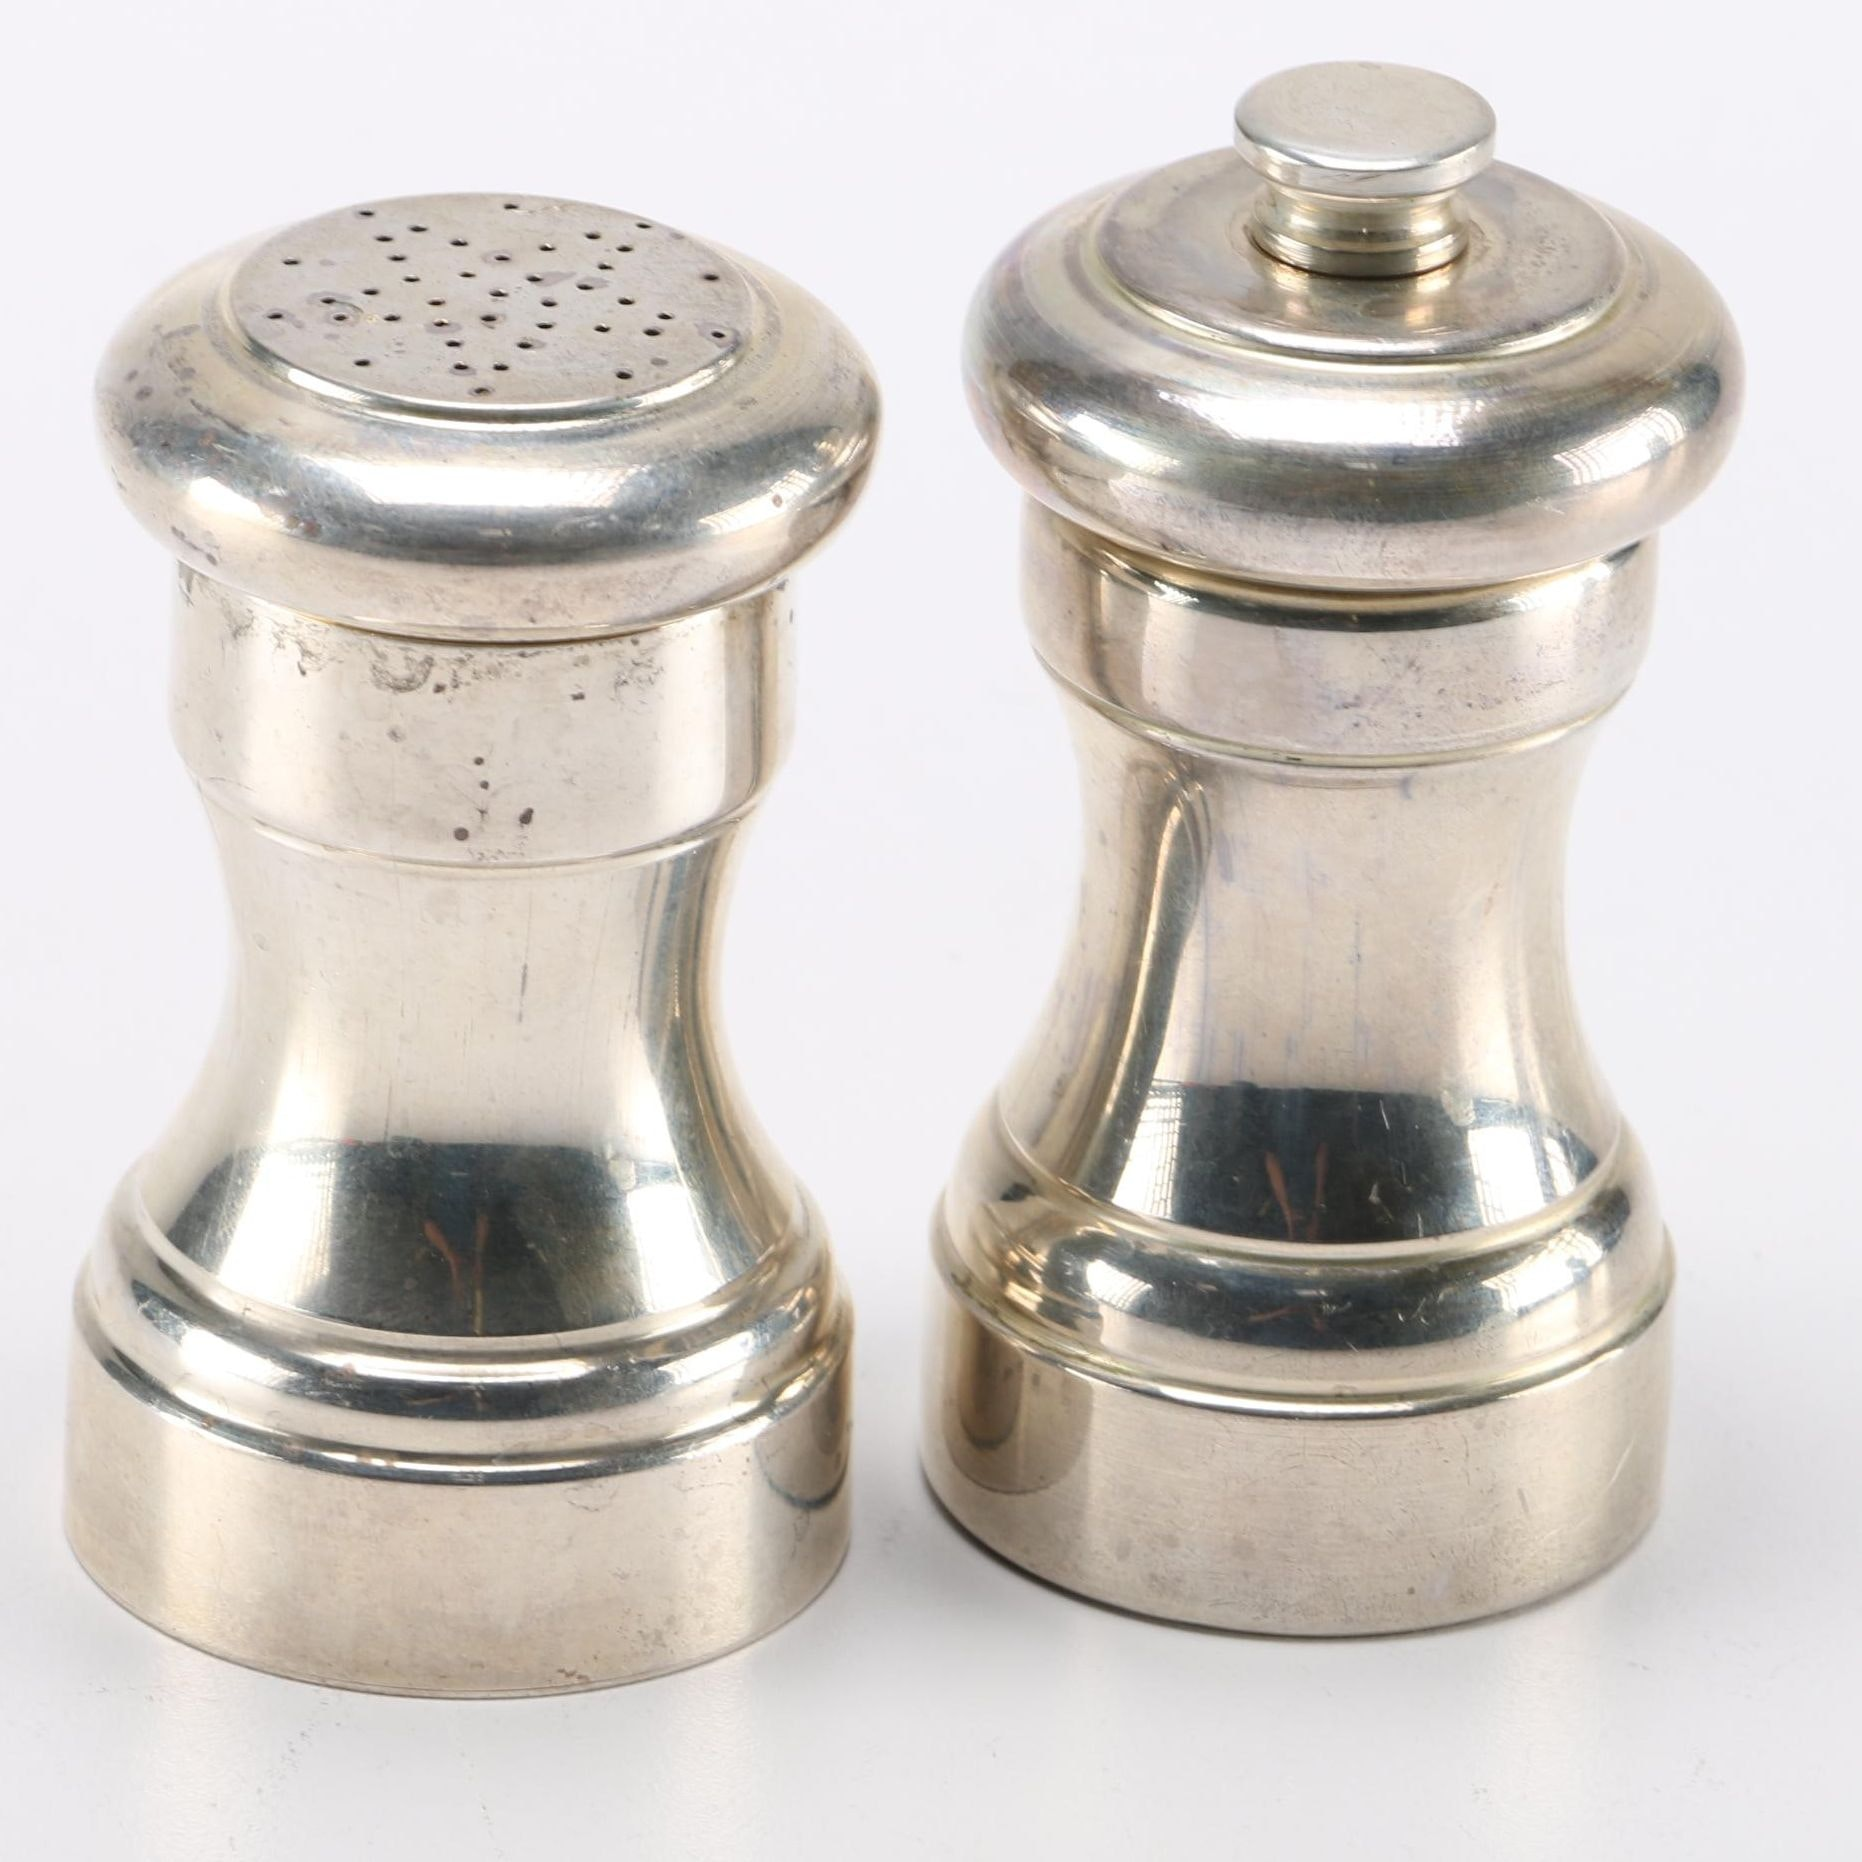 Tiffany & Co. Sterling Silver Salt Shaker and Pepper Grinder